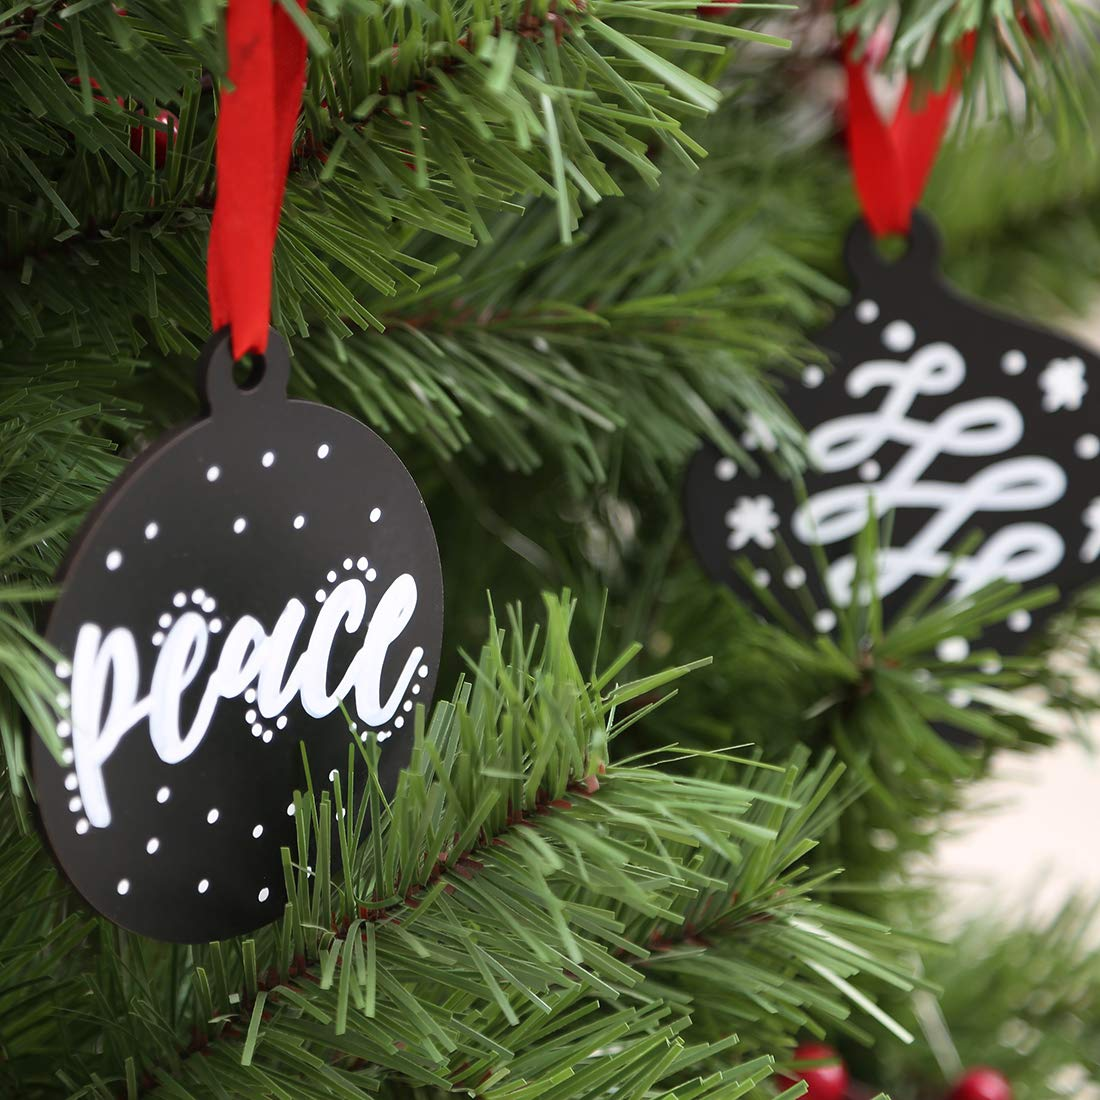 Wedding Party UNIQOOO 12 Count Blank Mini Hanging Chalkboard Christmas Ornament with String Message Board DIY Welcome Sign Xmas Tree Decorations Decorative Blackboard Bag Tags